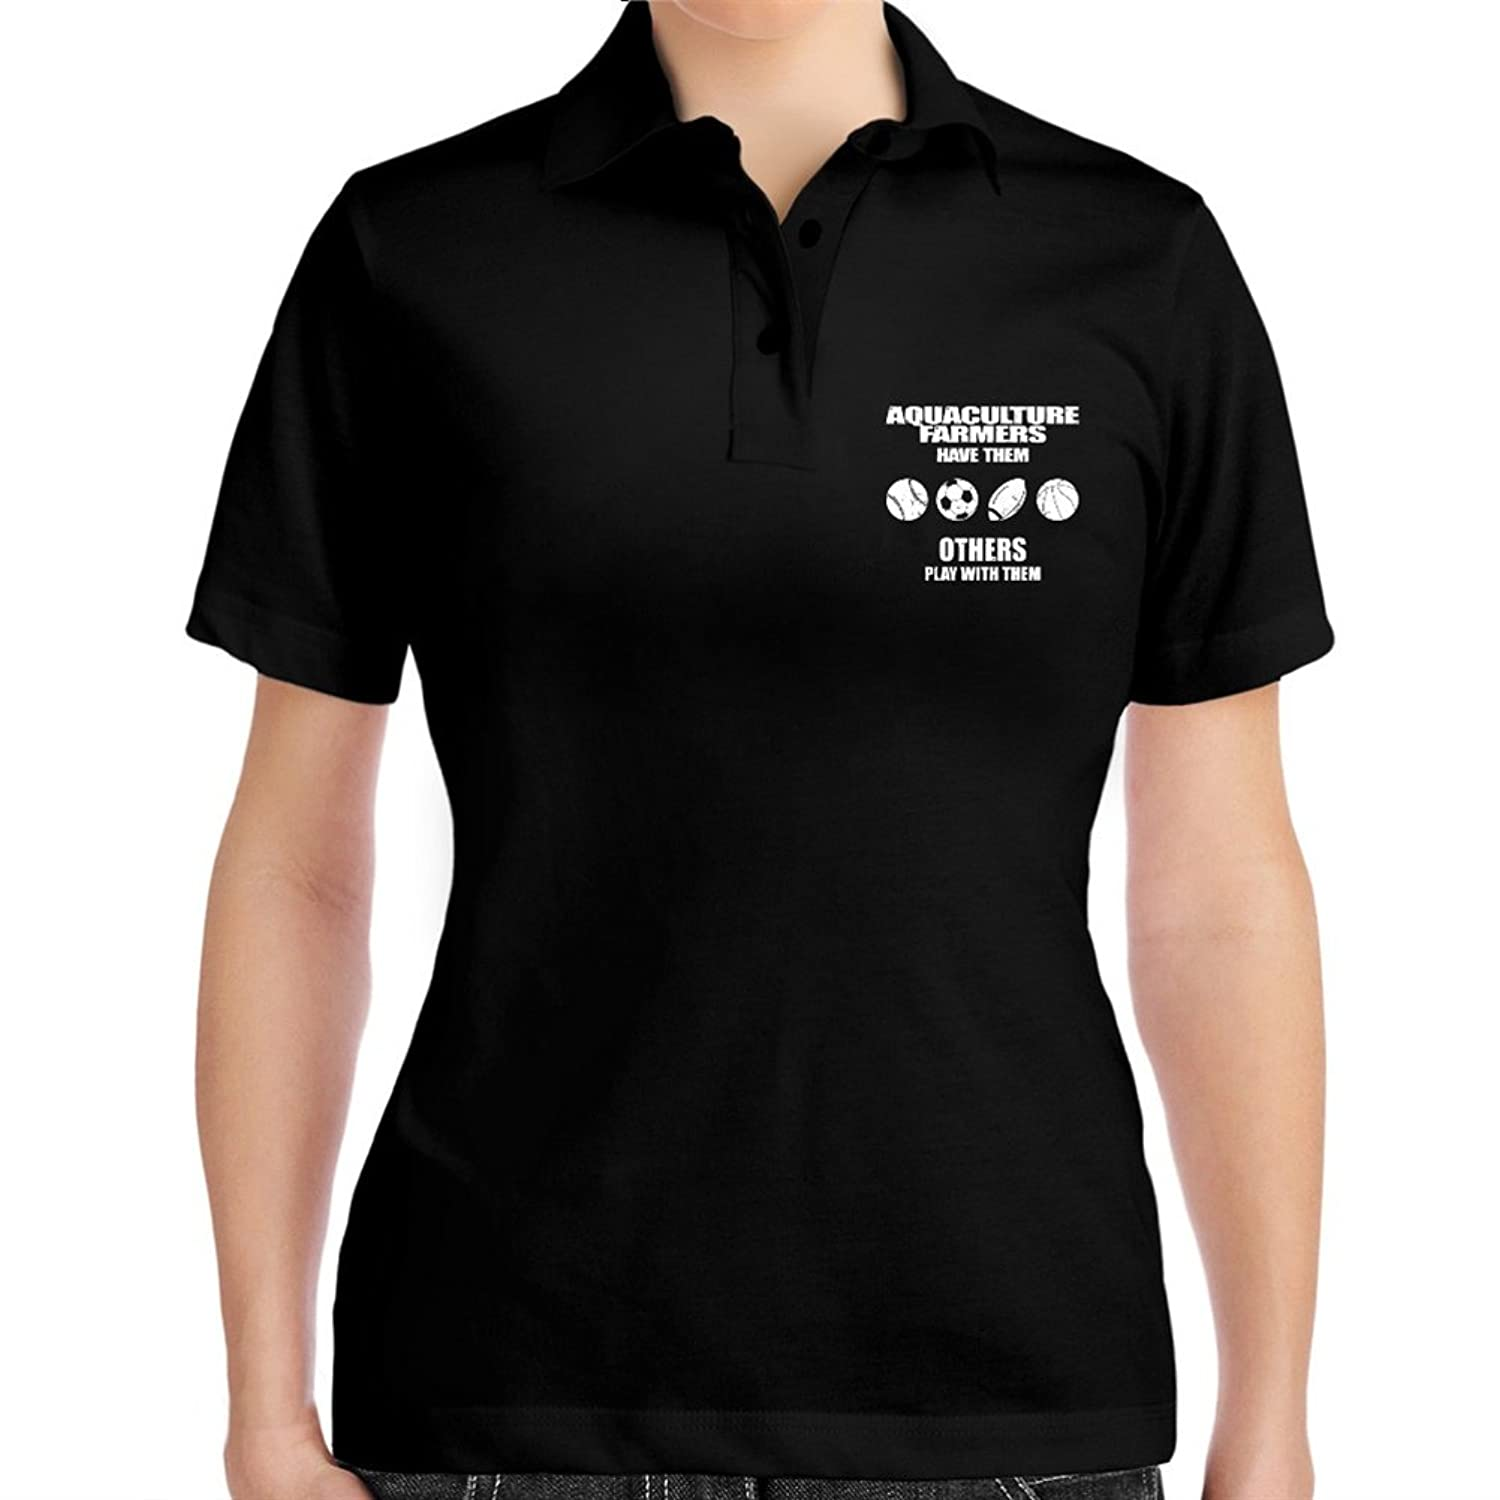 Aquaculture Farmer have them others play with them Women Polo Shirt